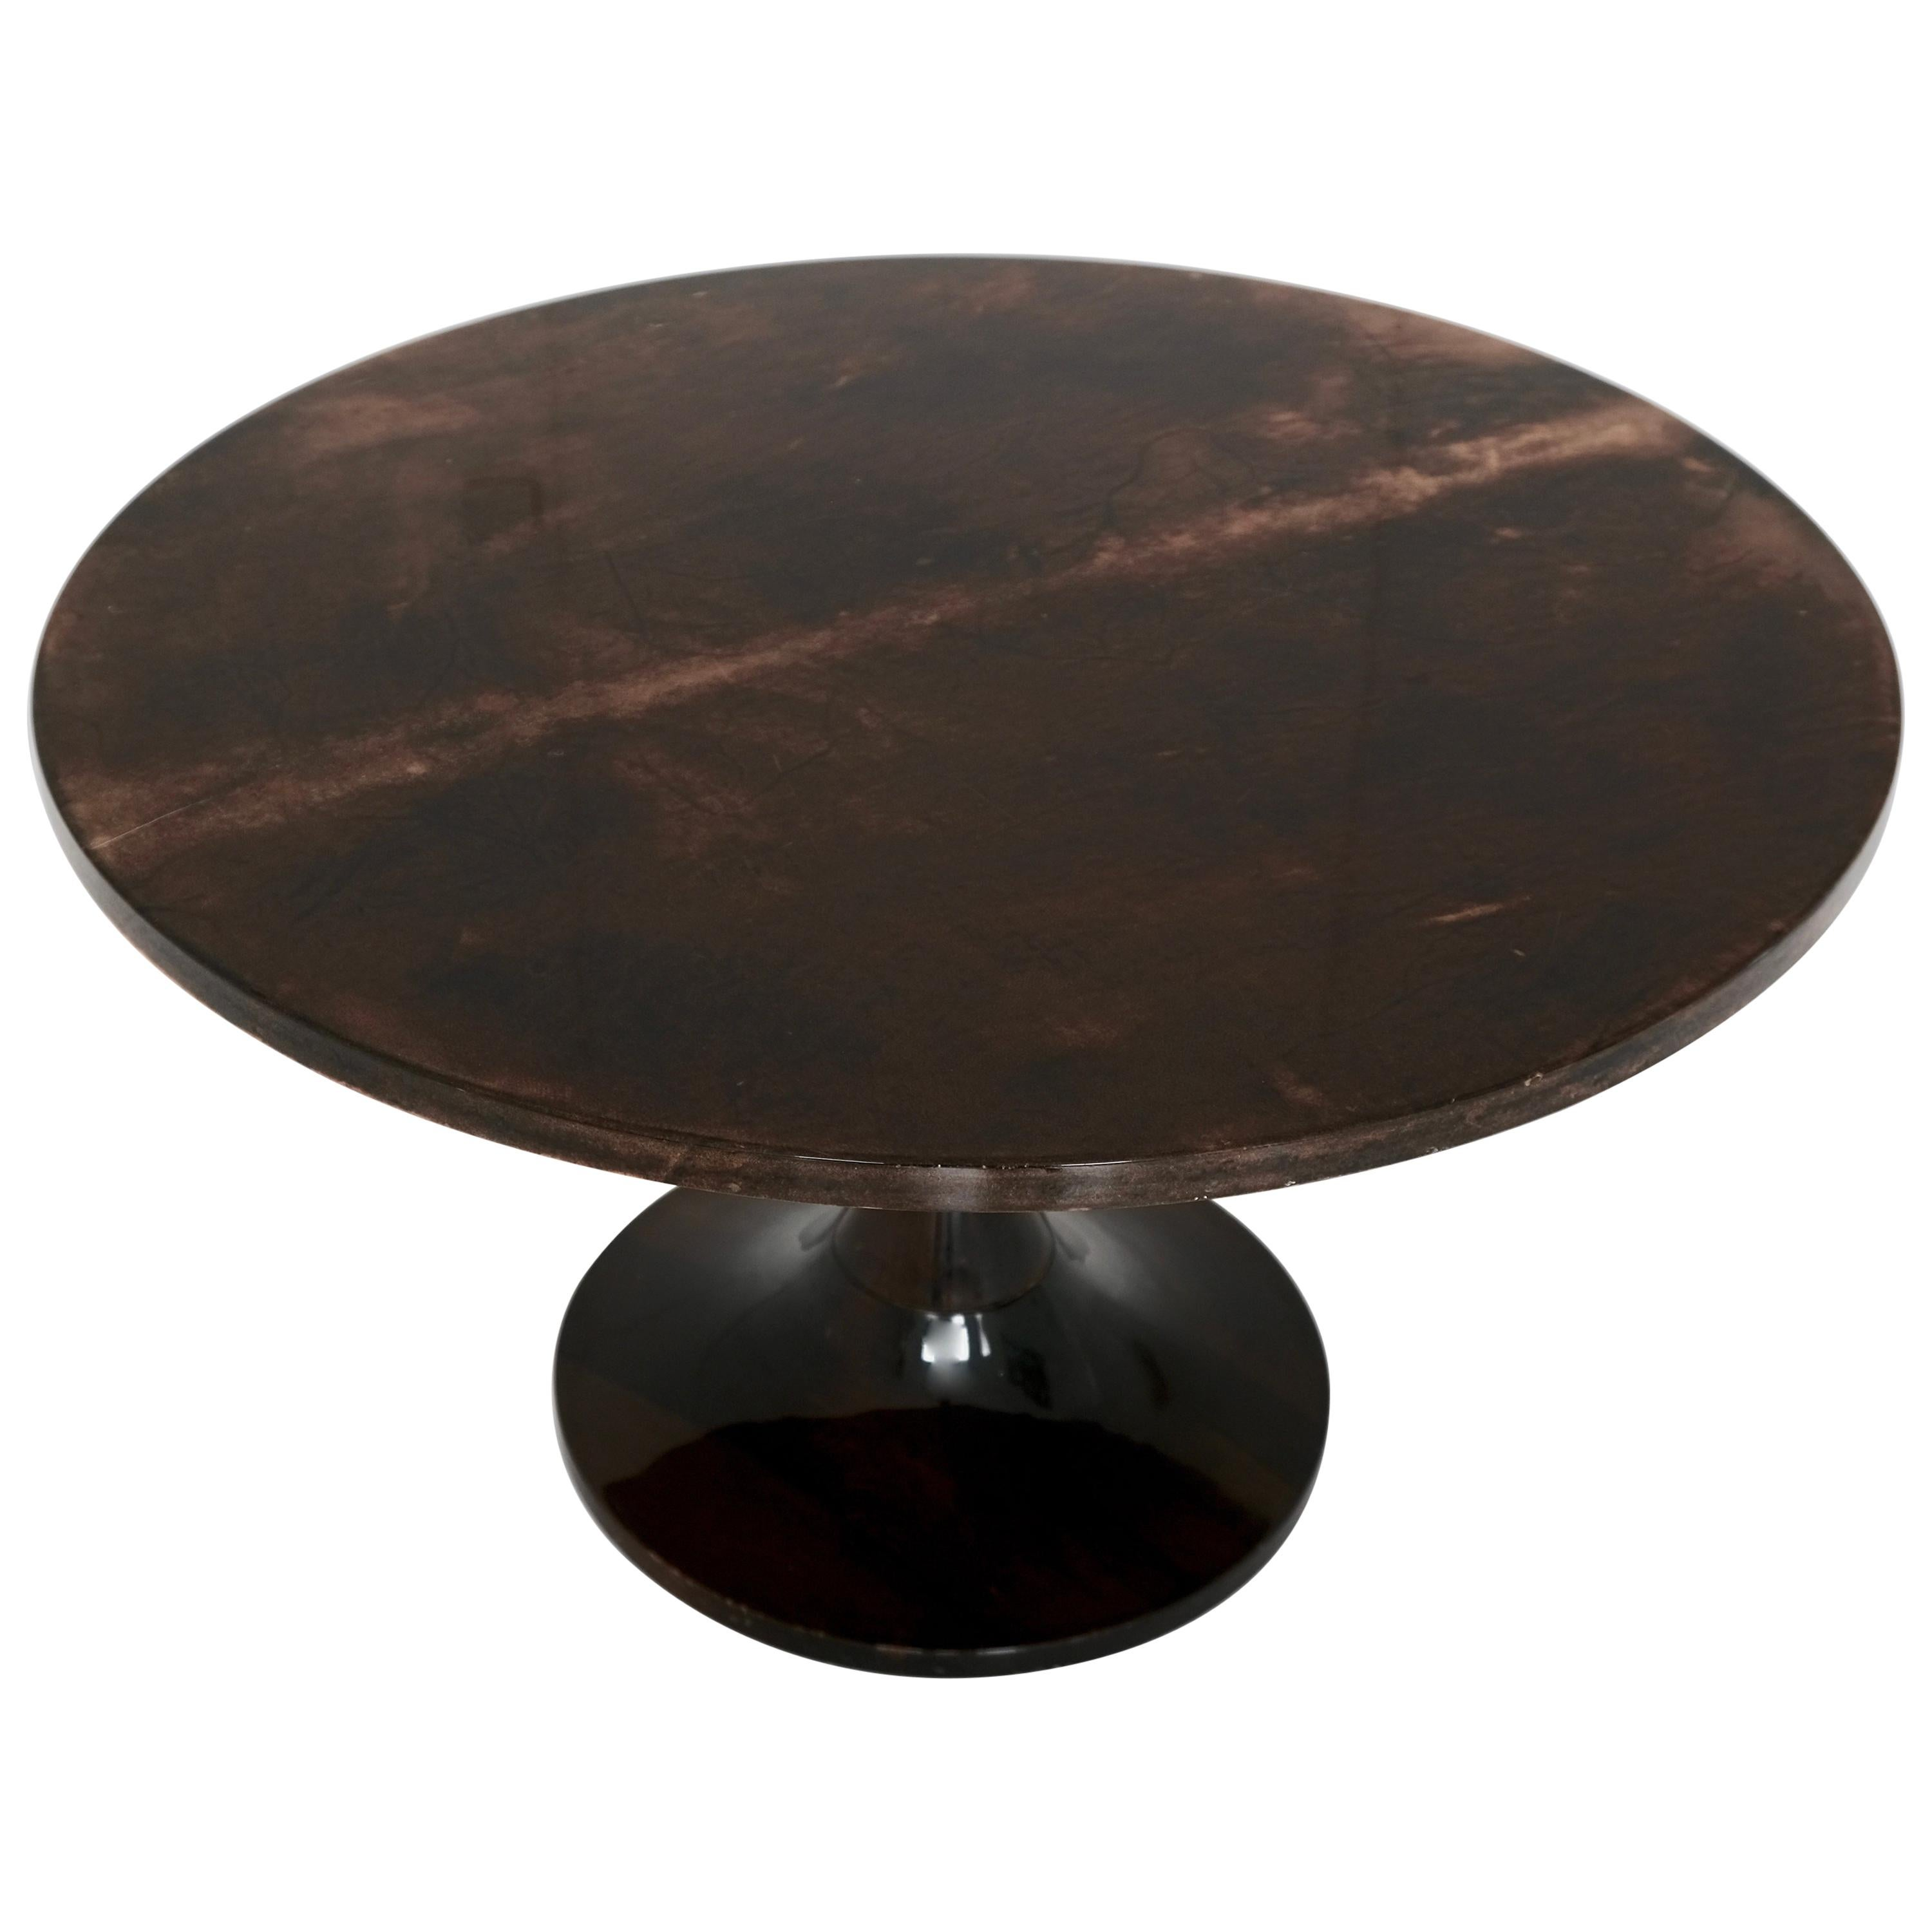 Aldo Tura Side Table with Lacquered Goat Skin, Italy, 1960s